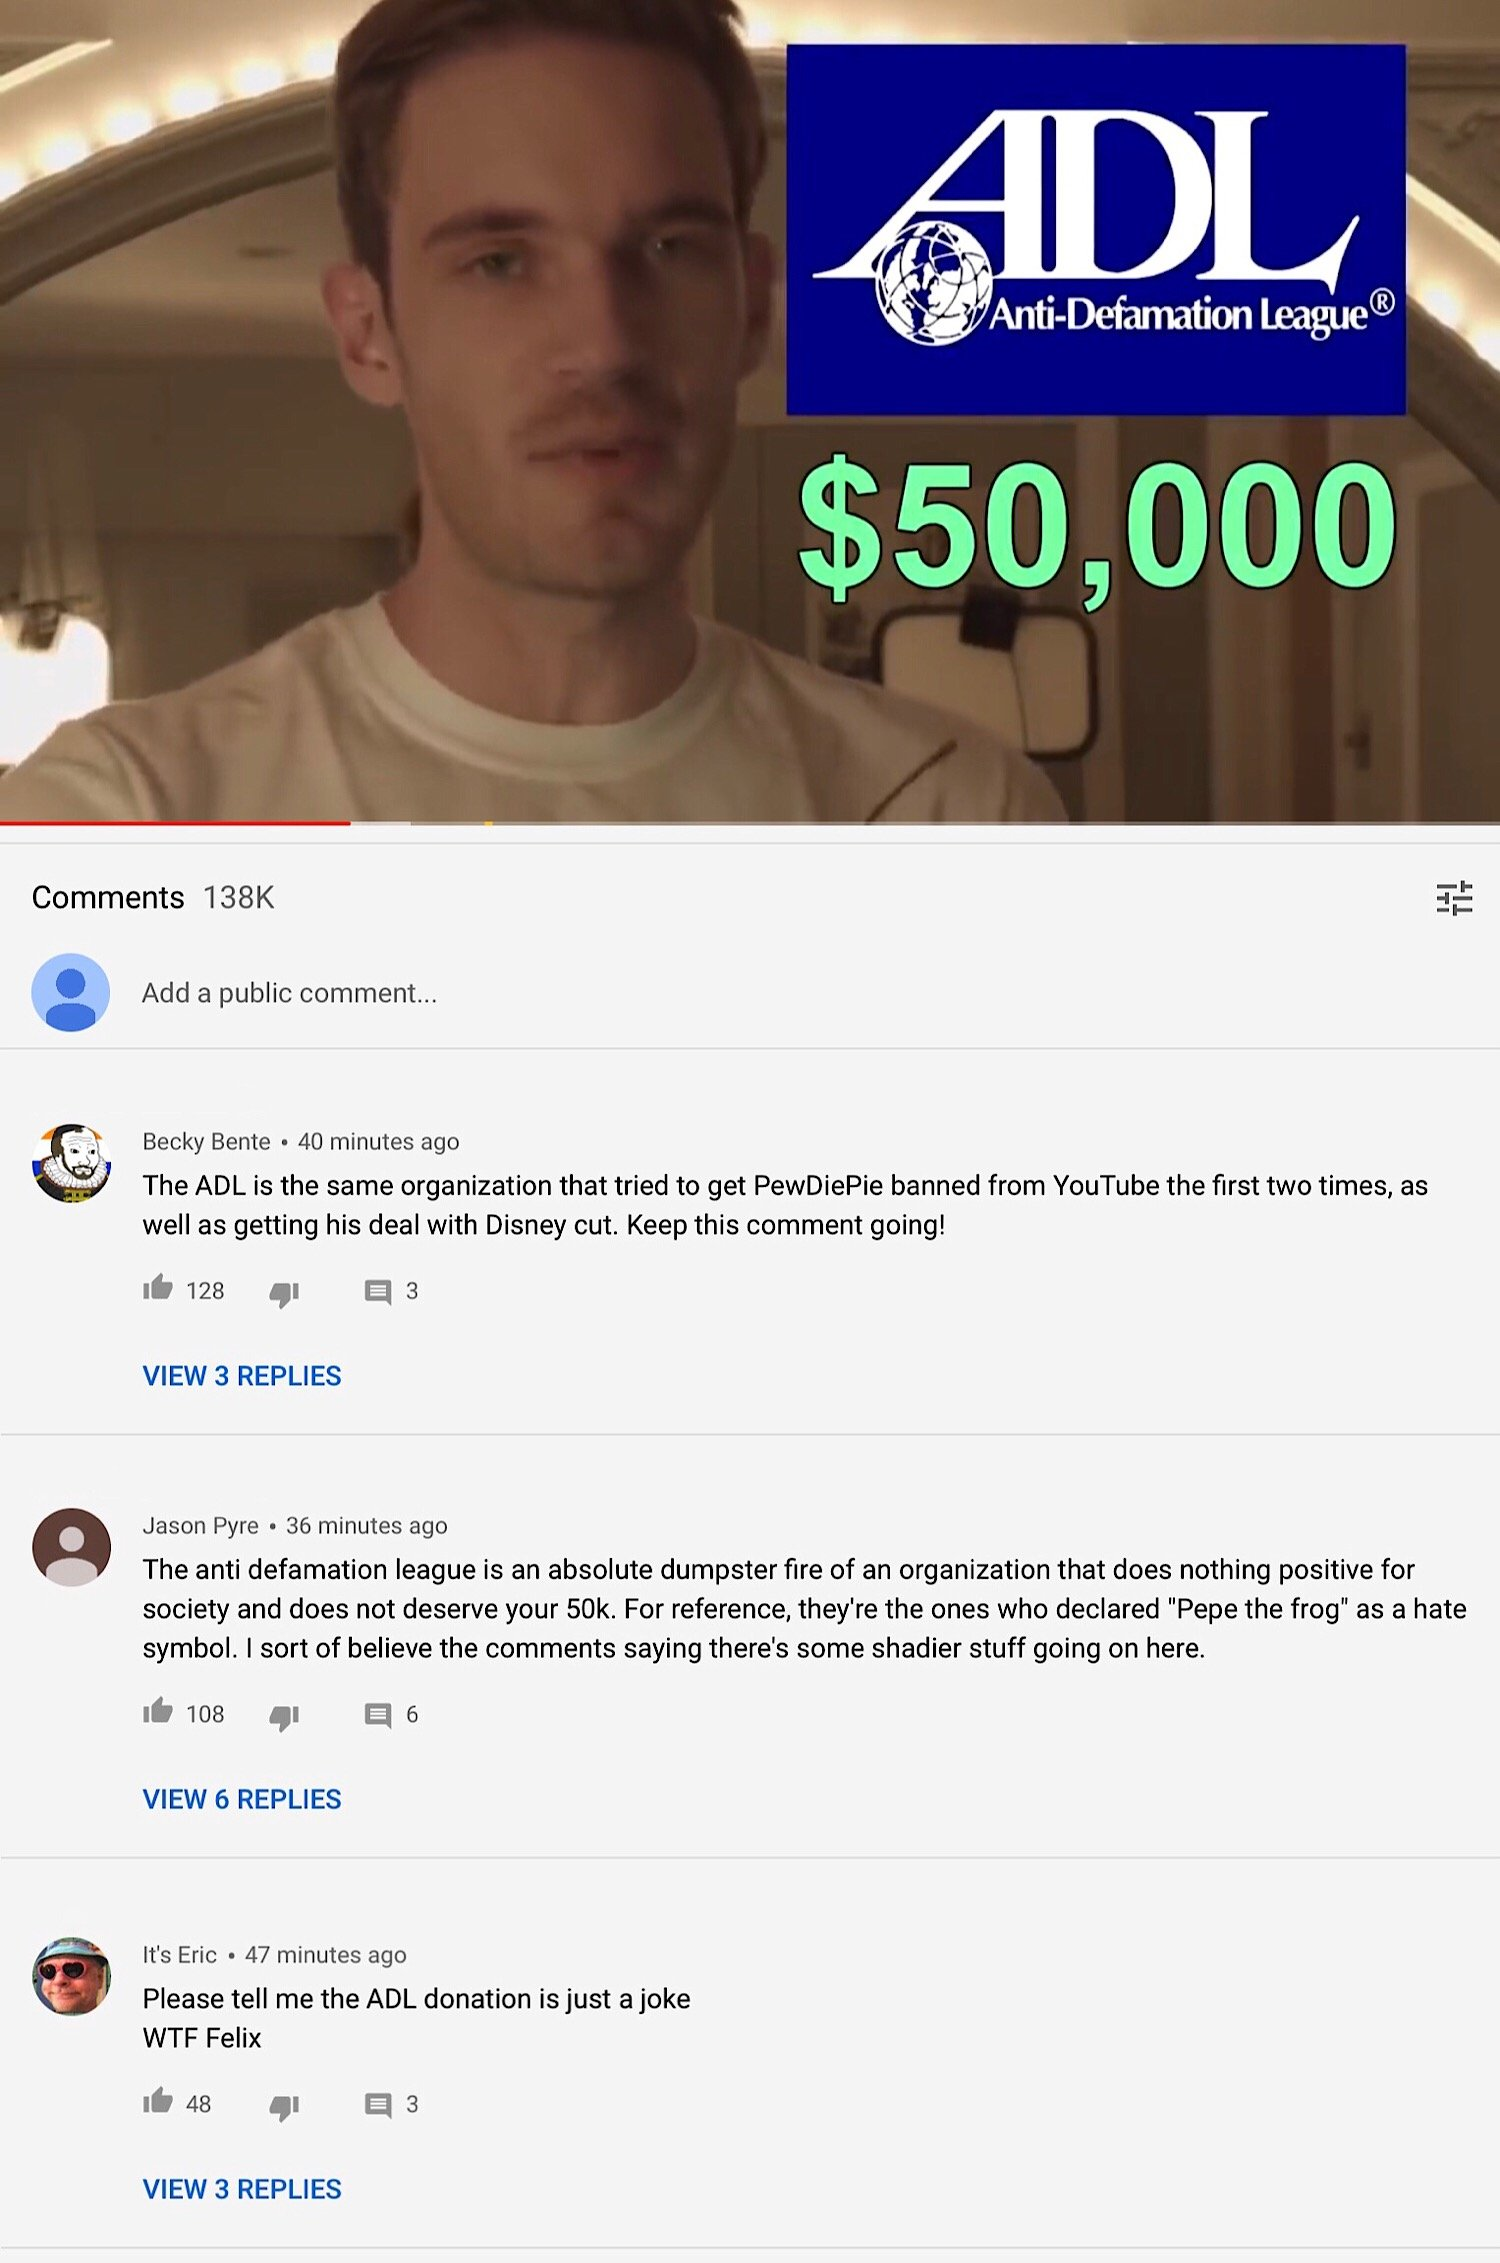 Some of the top comments from PewDiePie's video which criticize the ADL.